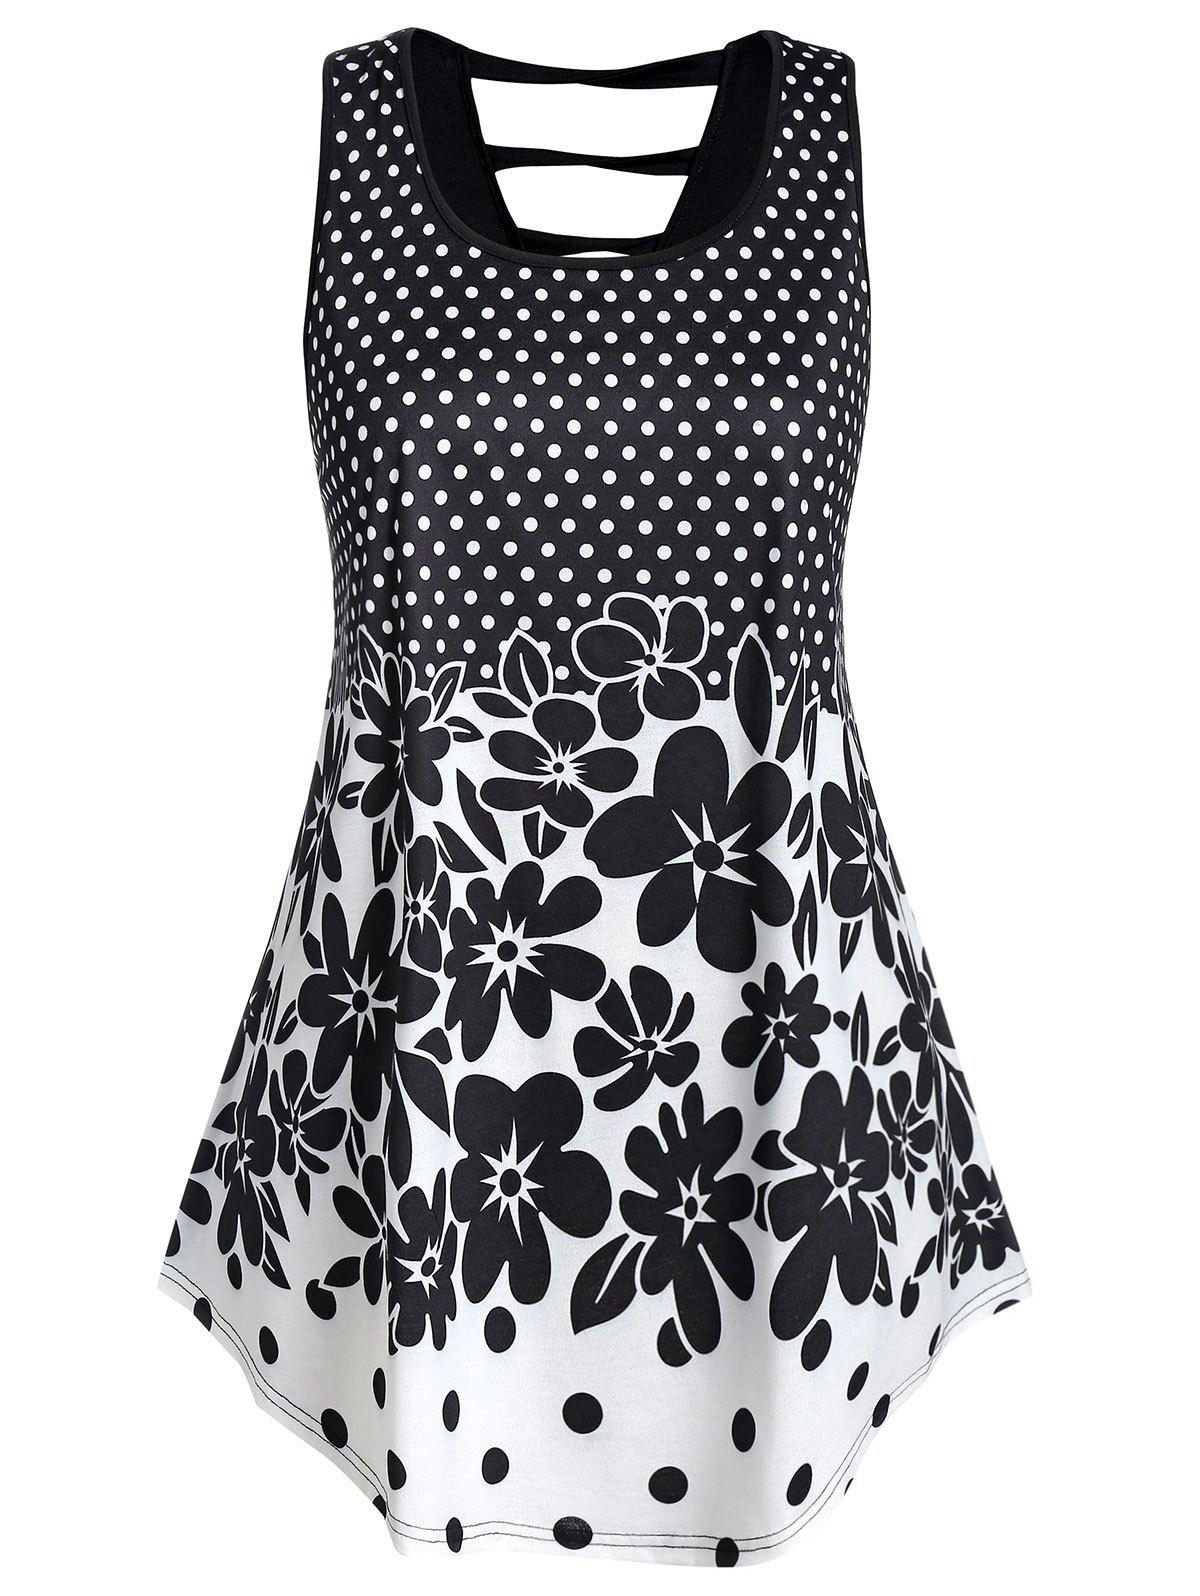 Plus Size Polka Dot and Floral Print Ladder Tank Top Rosegal